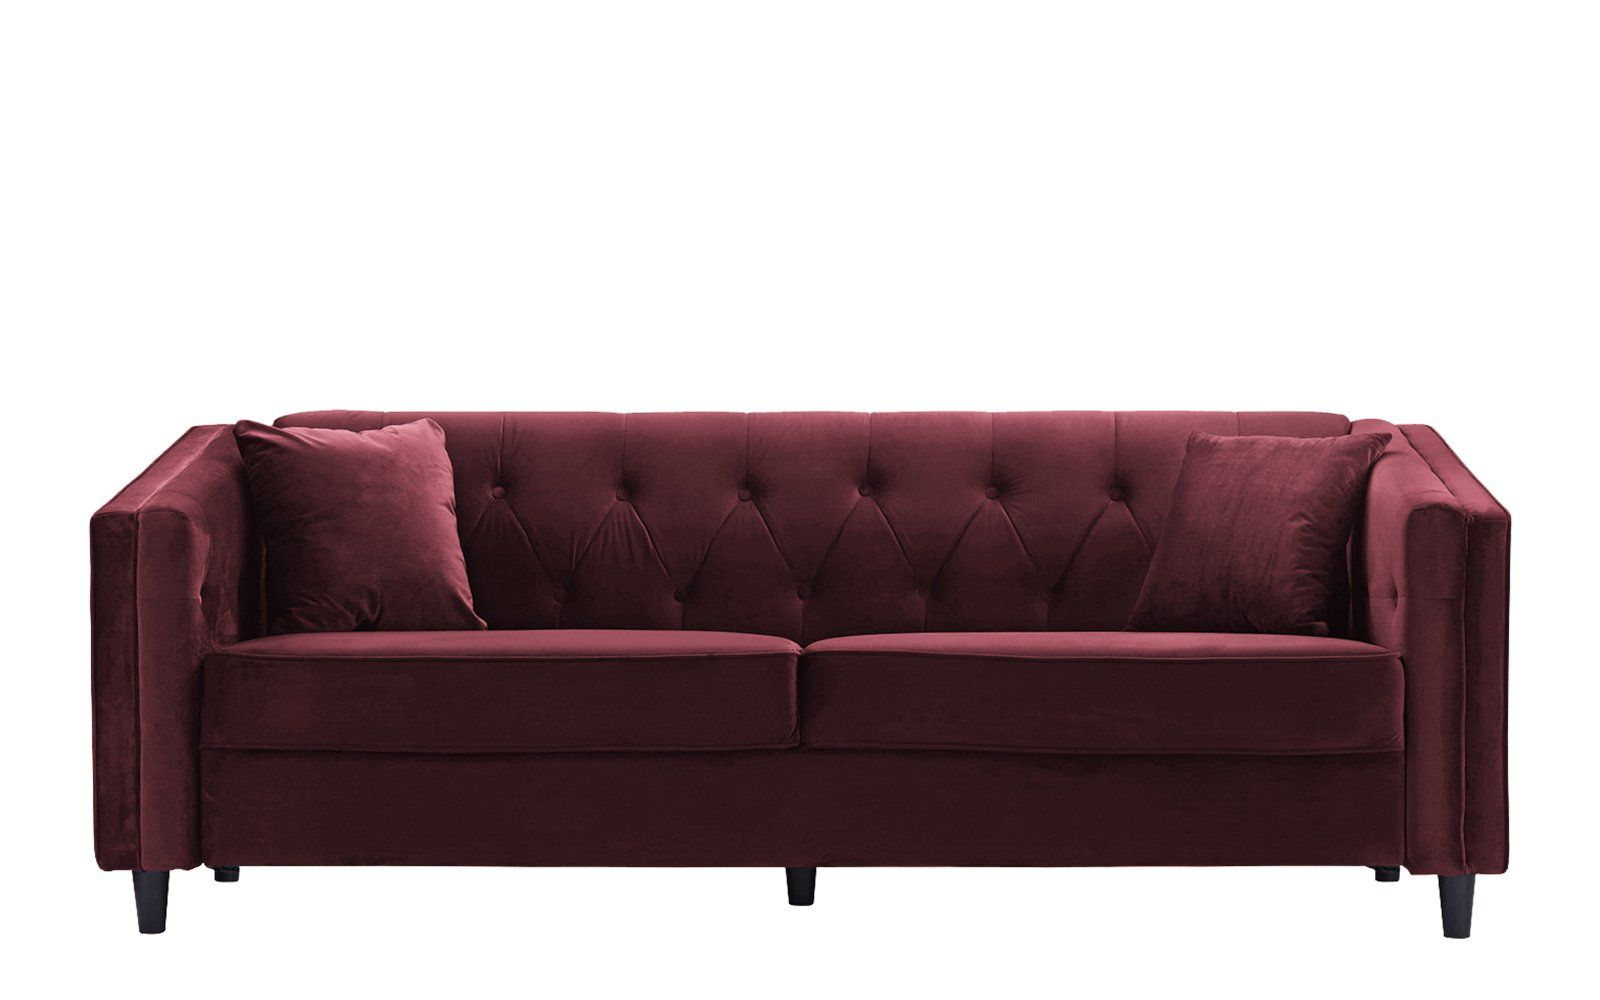 Tufted Button Sofa Big Sofas Adelia Victorian Velvet With Accents Products